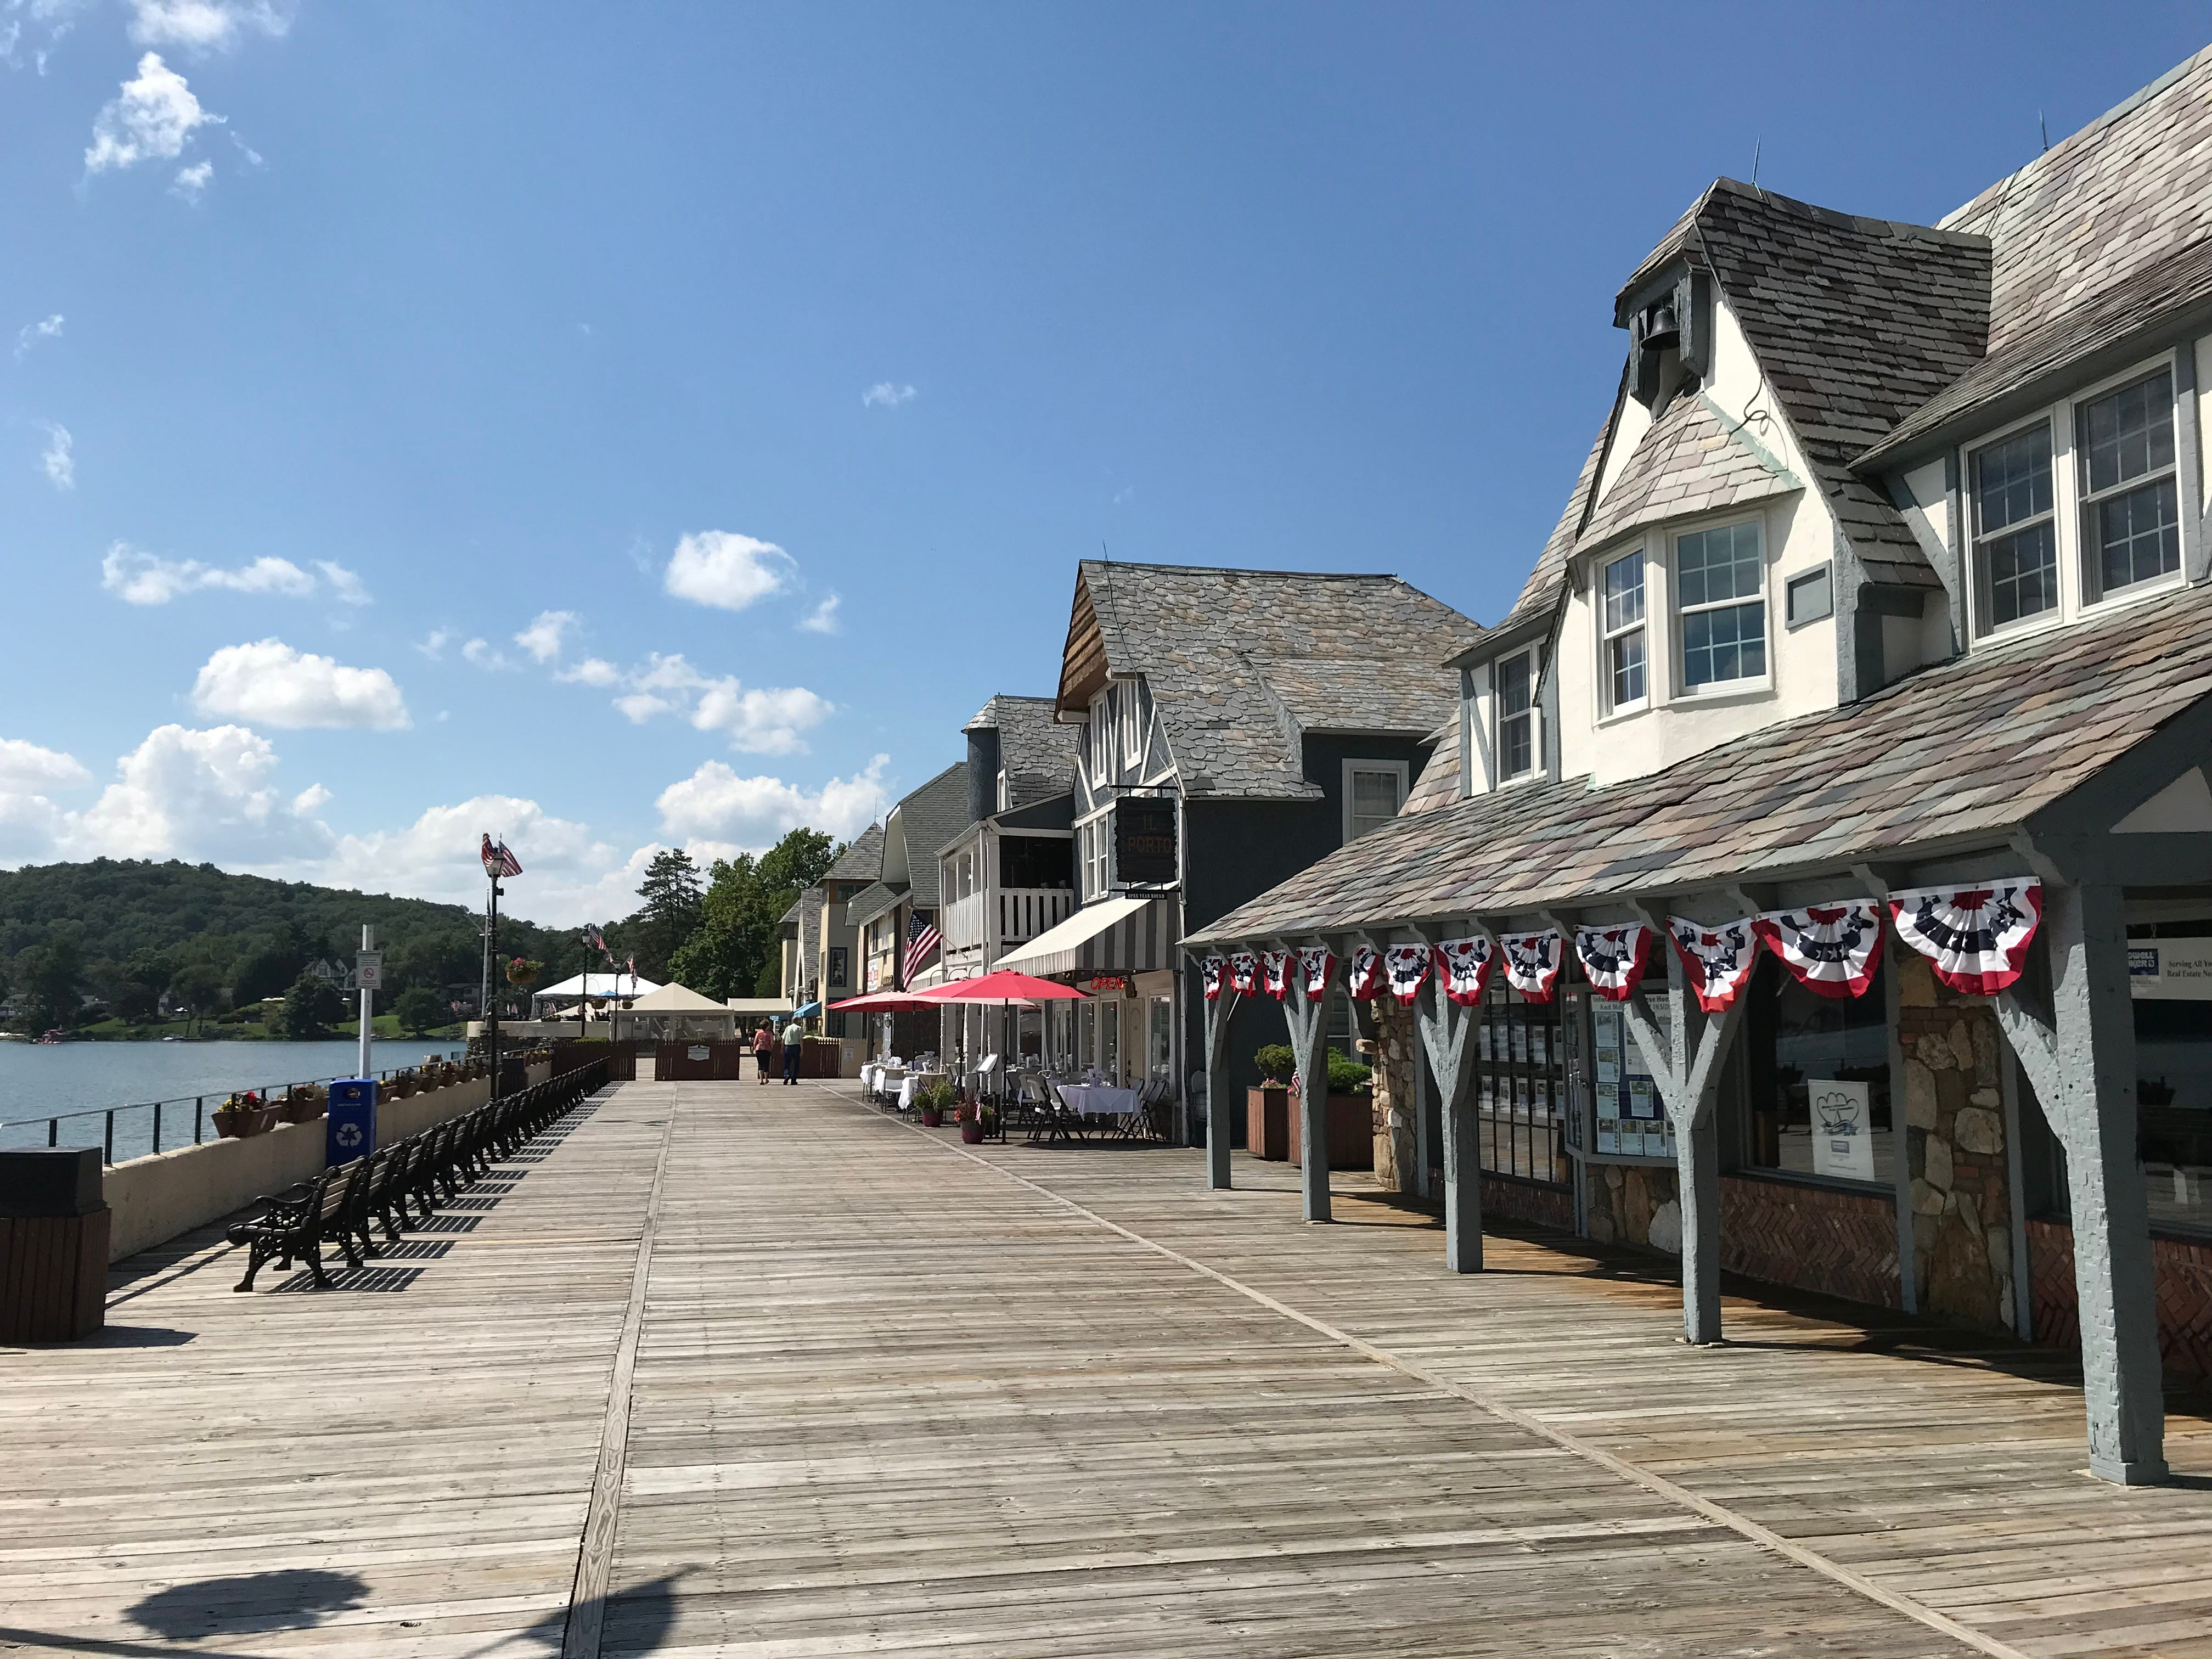 The boardwalk at Lake Mohawk in Sparta, N.J., as seen on July 26, 2018, is owned by the private lake community's association but a section is open to the public to allow access to local businesses.